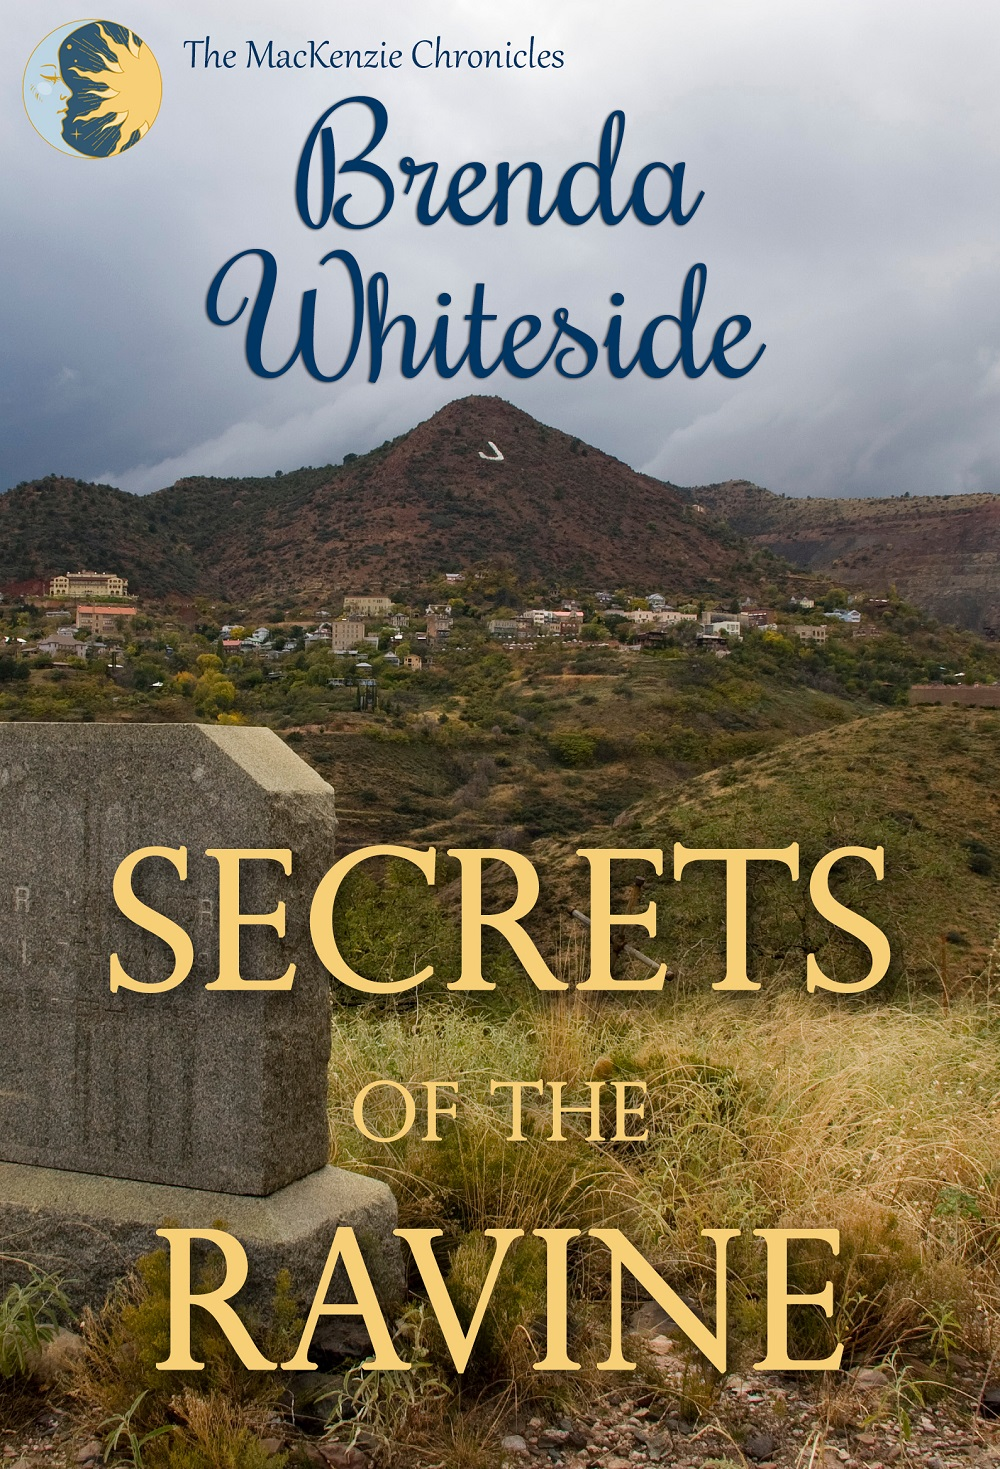 Solve the murder or become the next victim… love the sound of this murder mystery novel by @brendawhitesid2 #mystery #supernatural #cosycrime #romance